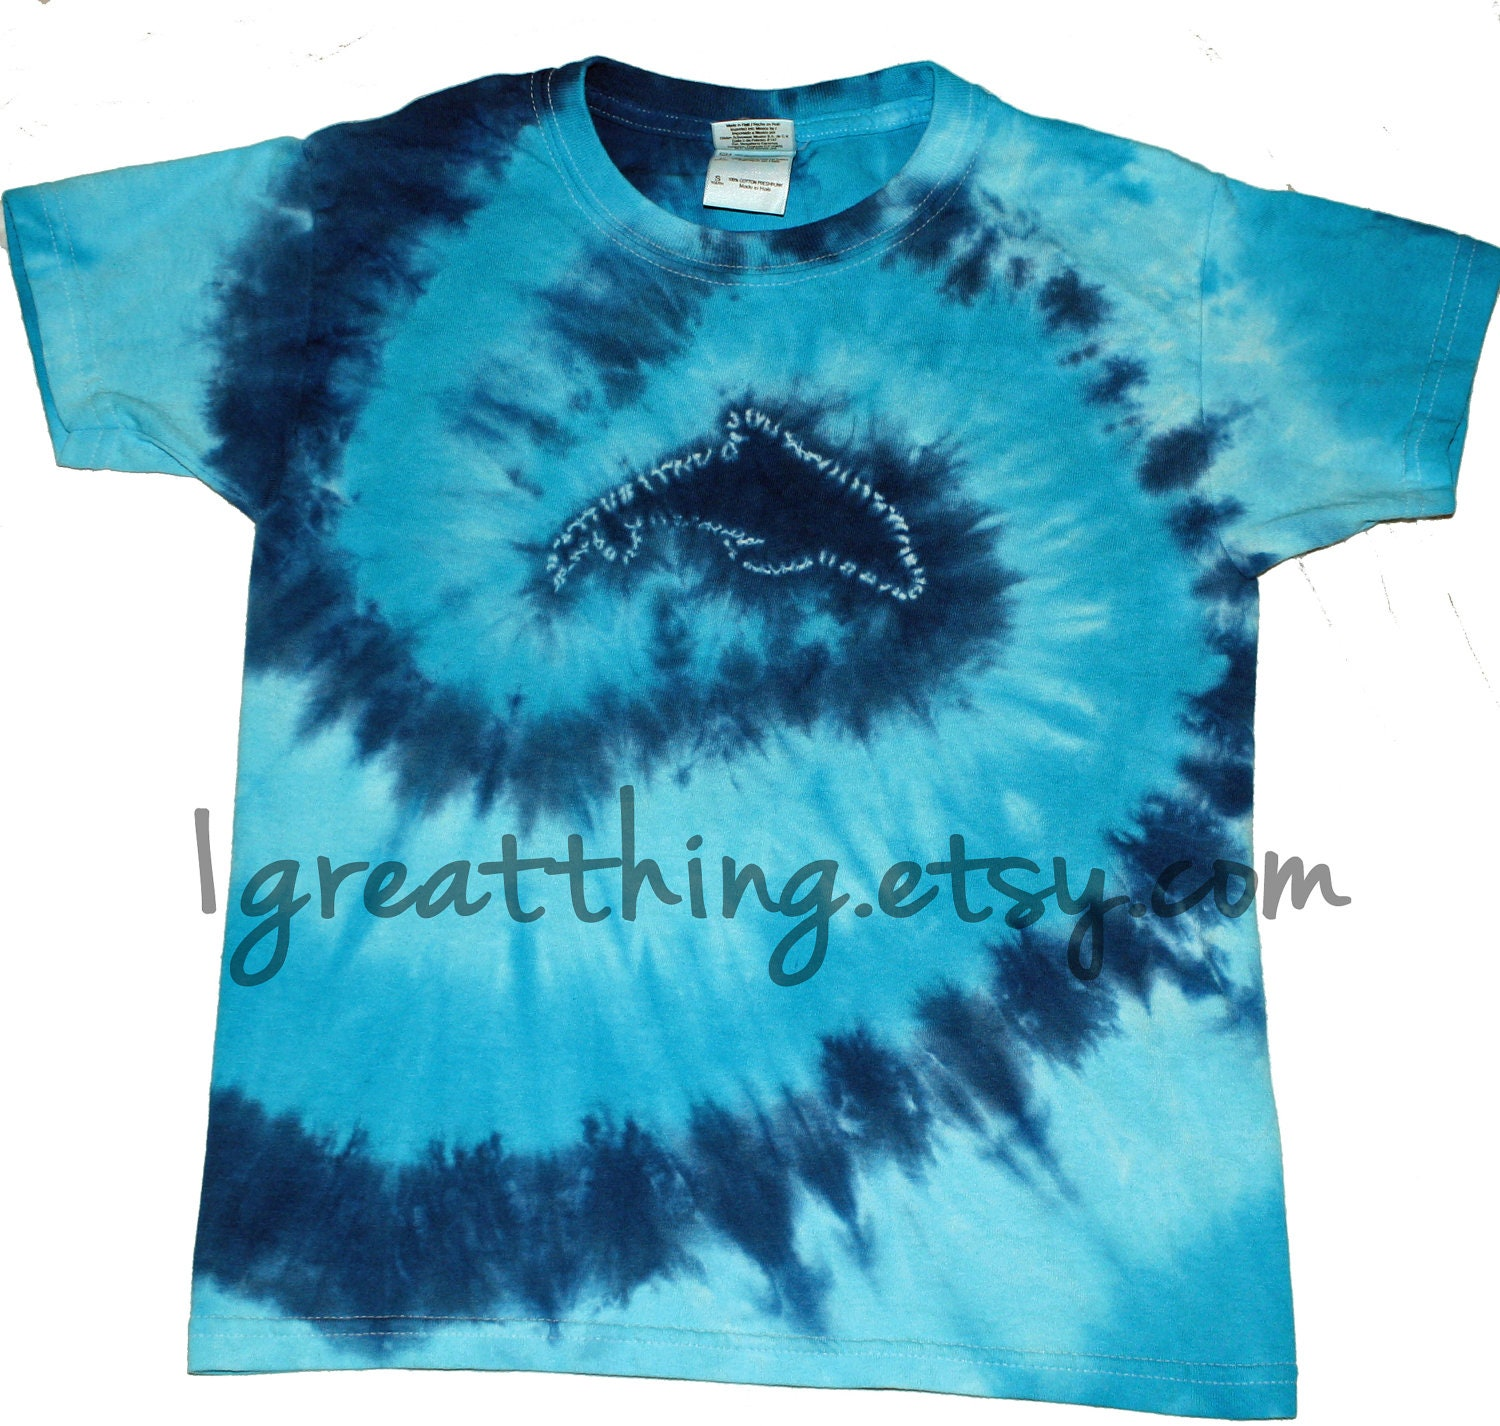 Dolphin Tie Dye T Shirt Plus Sizes By One Great By 1greatthing